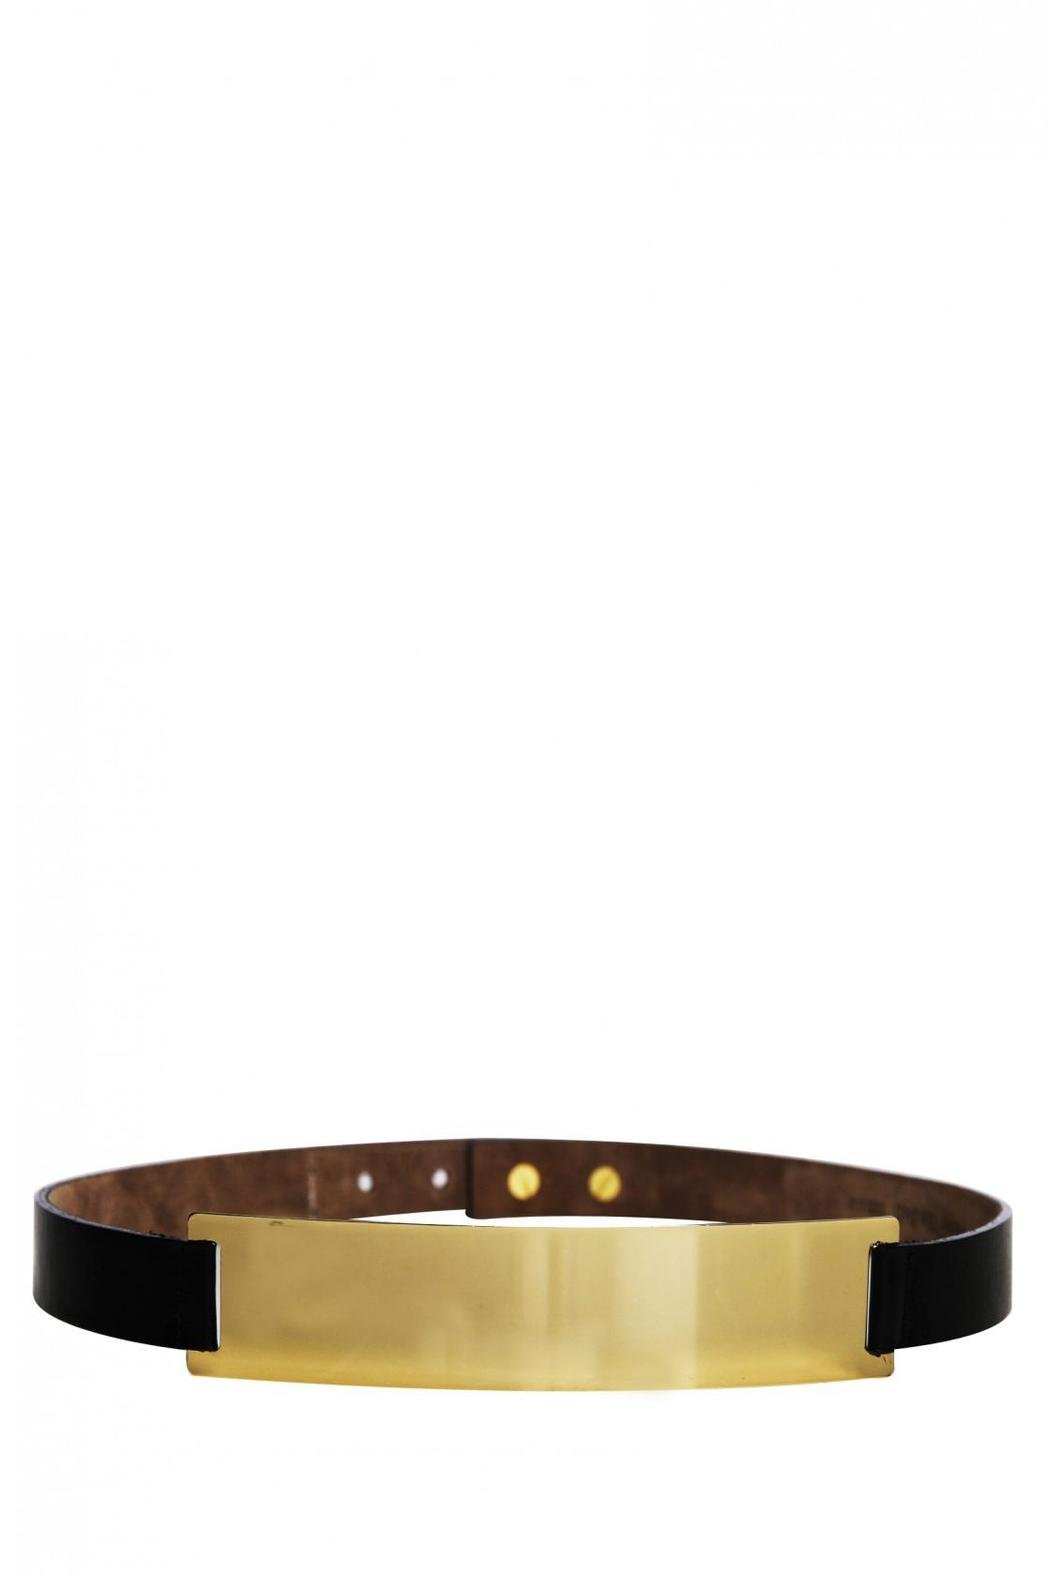 Discover the Versace New Collection of handcrafted men's Belts: choose your favorite fashion belts and shop on the Versace US Online Store. Snake Medusa Leather Belt Black/Gold. $1, Regular Price Sale Price. Quick view. Square Barocco Buckle Leather Belt .